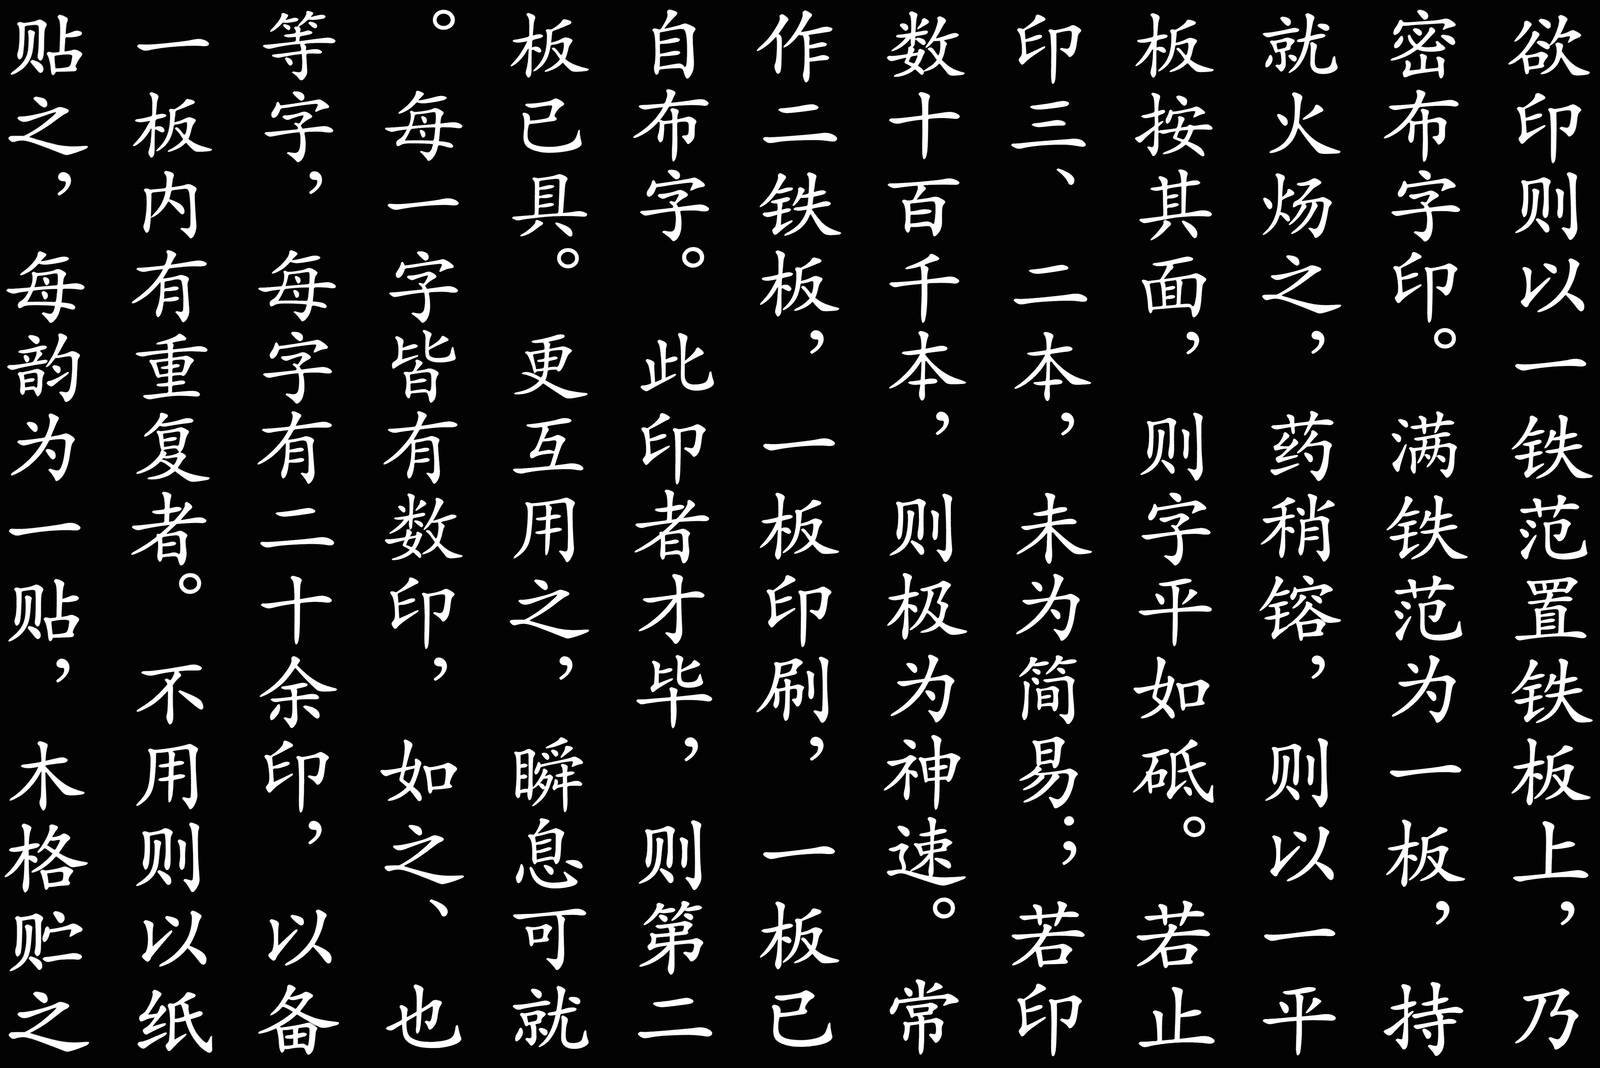 chinese china script characters letters pattern